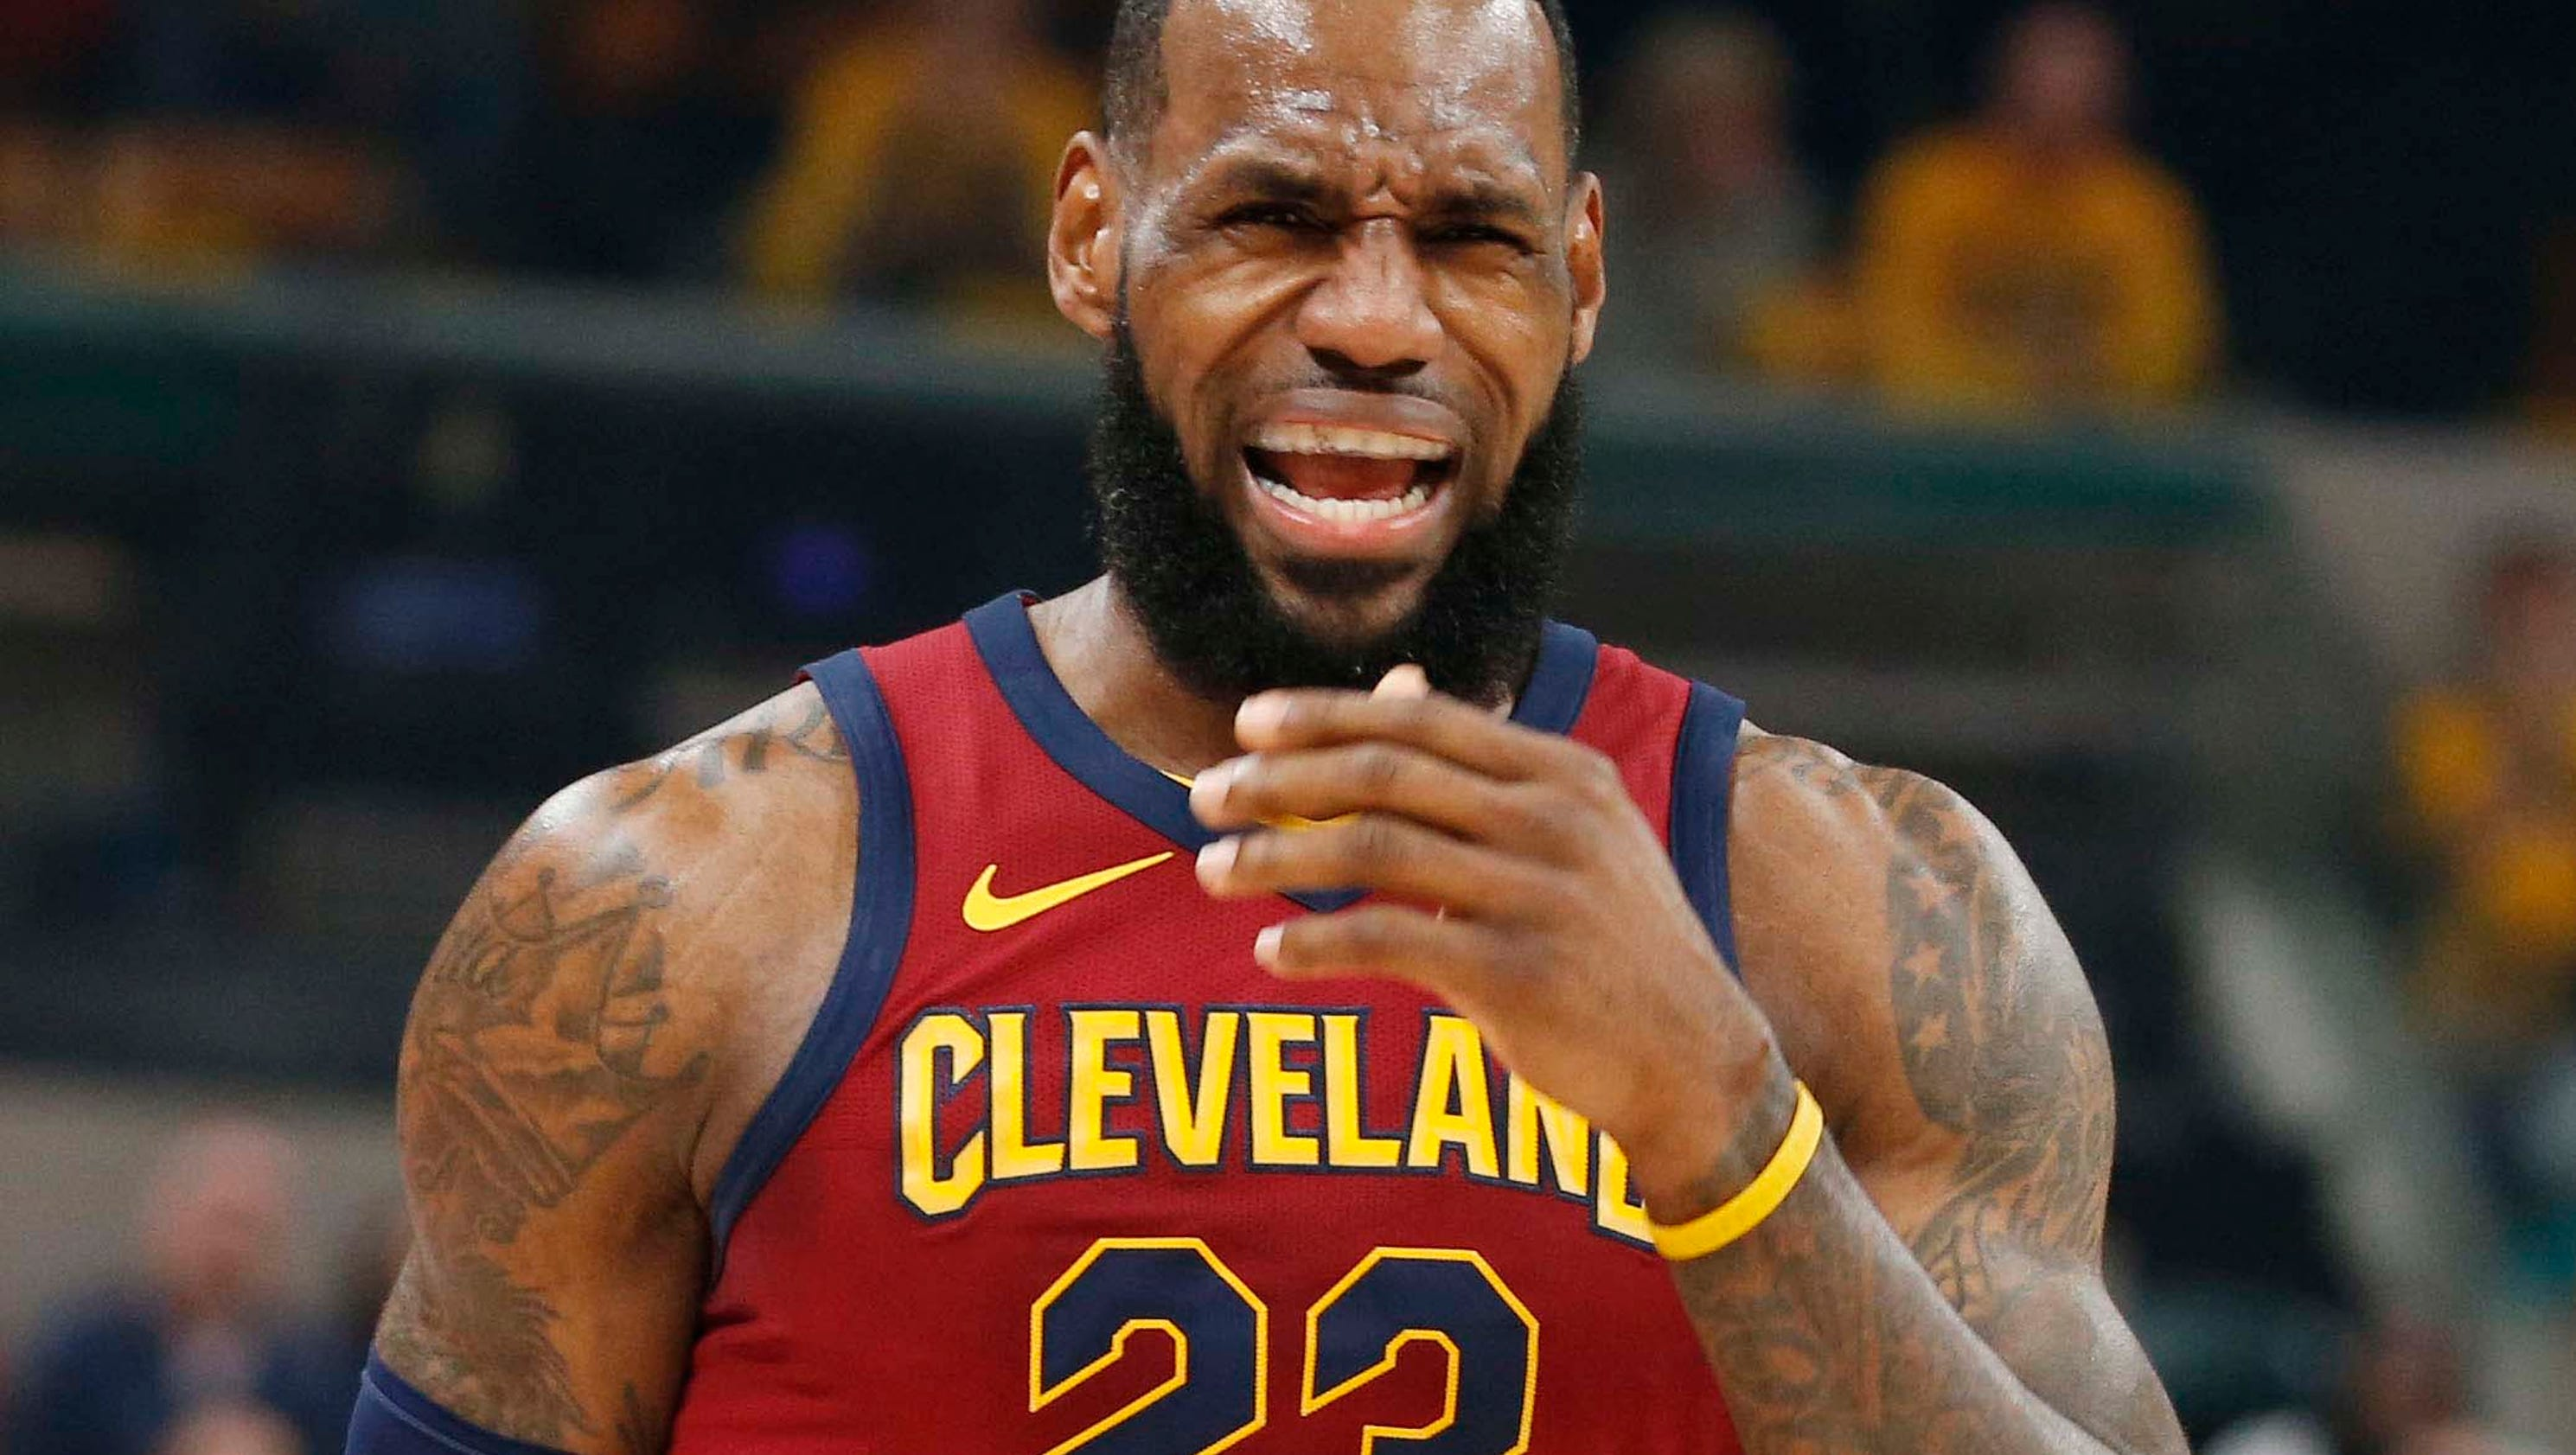 636599465892930746-usp-nba-playoffs-cleveland-cavaliers-at-indiana-p